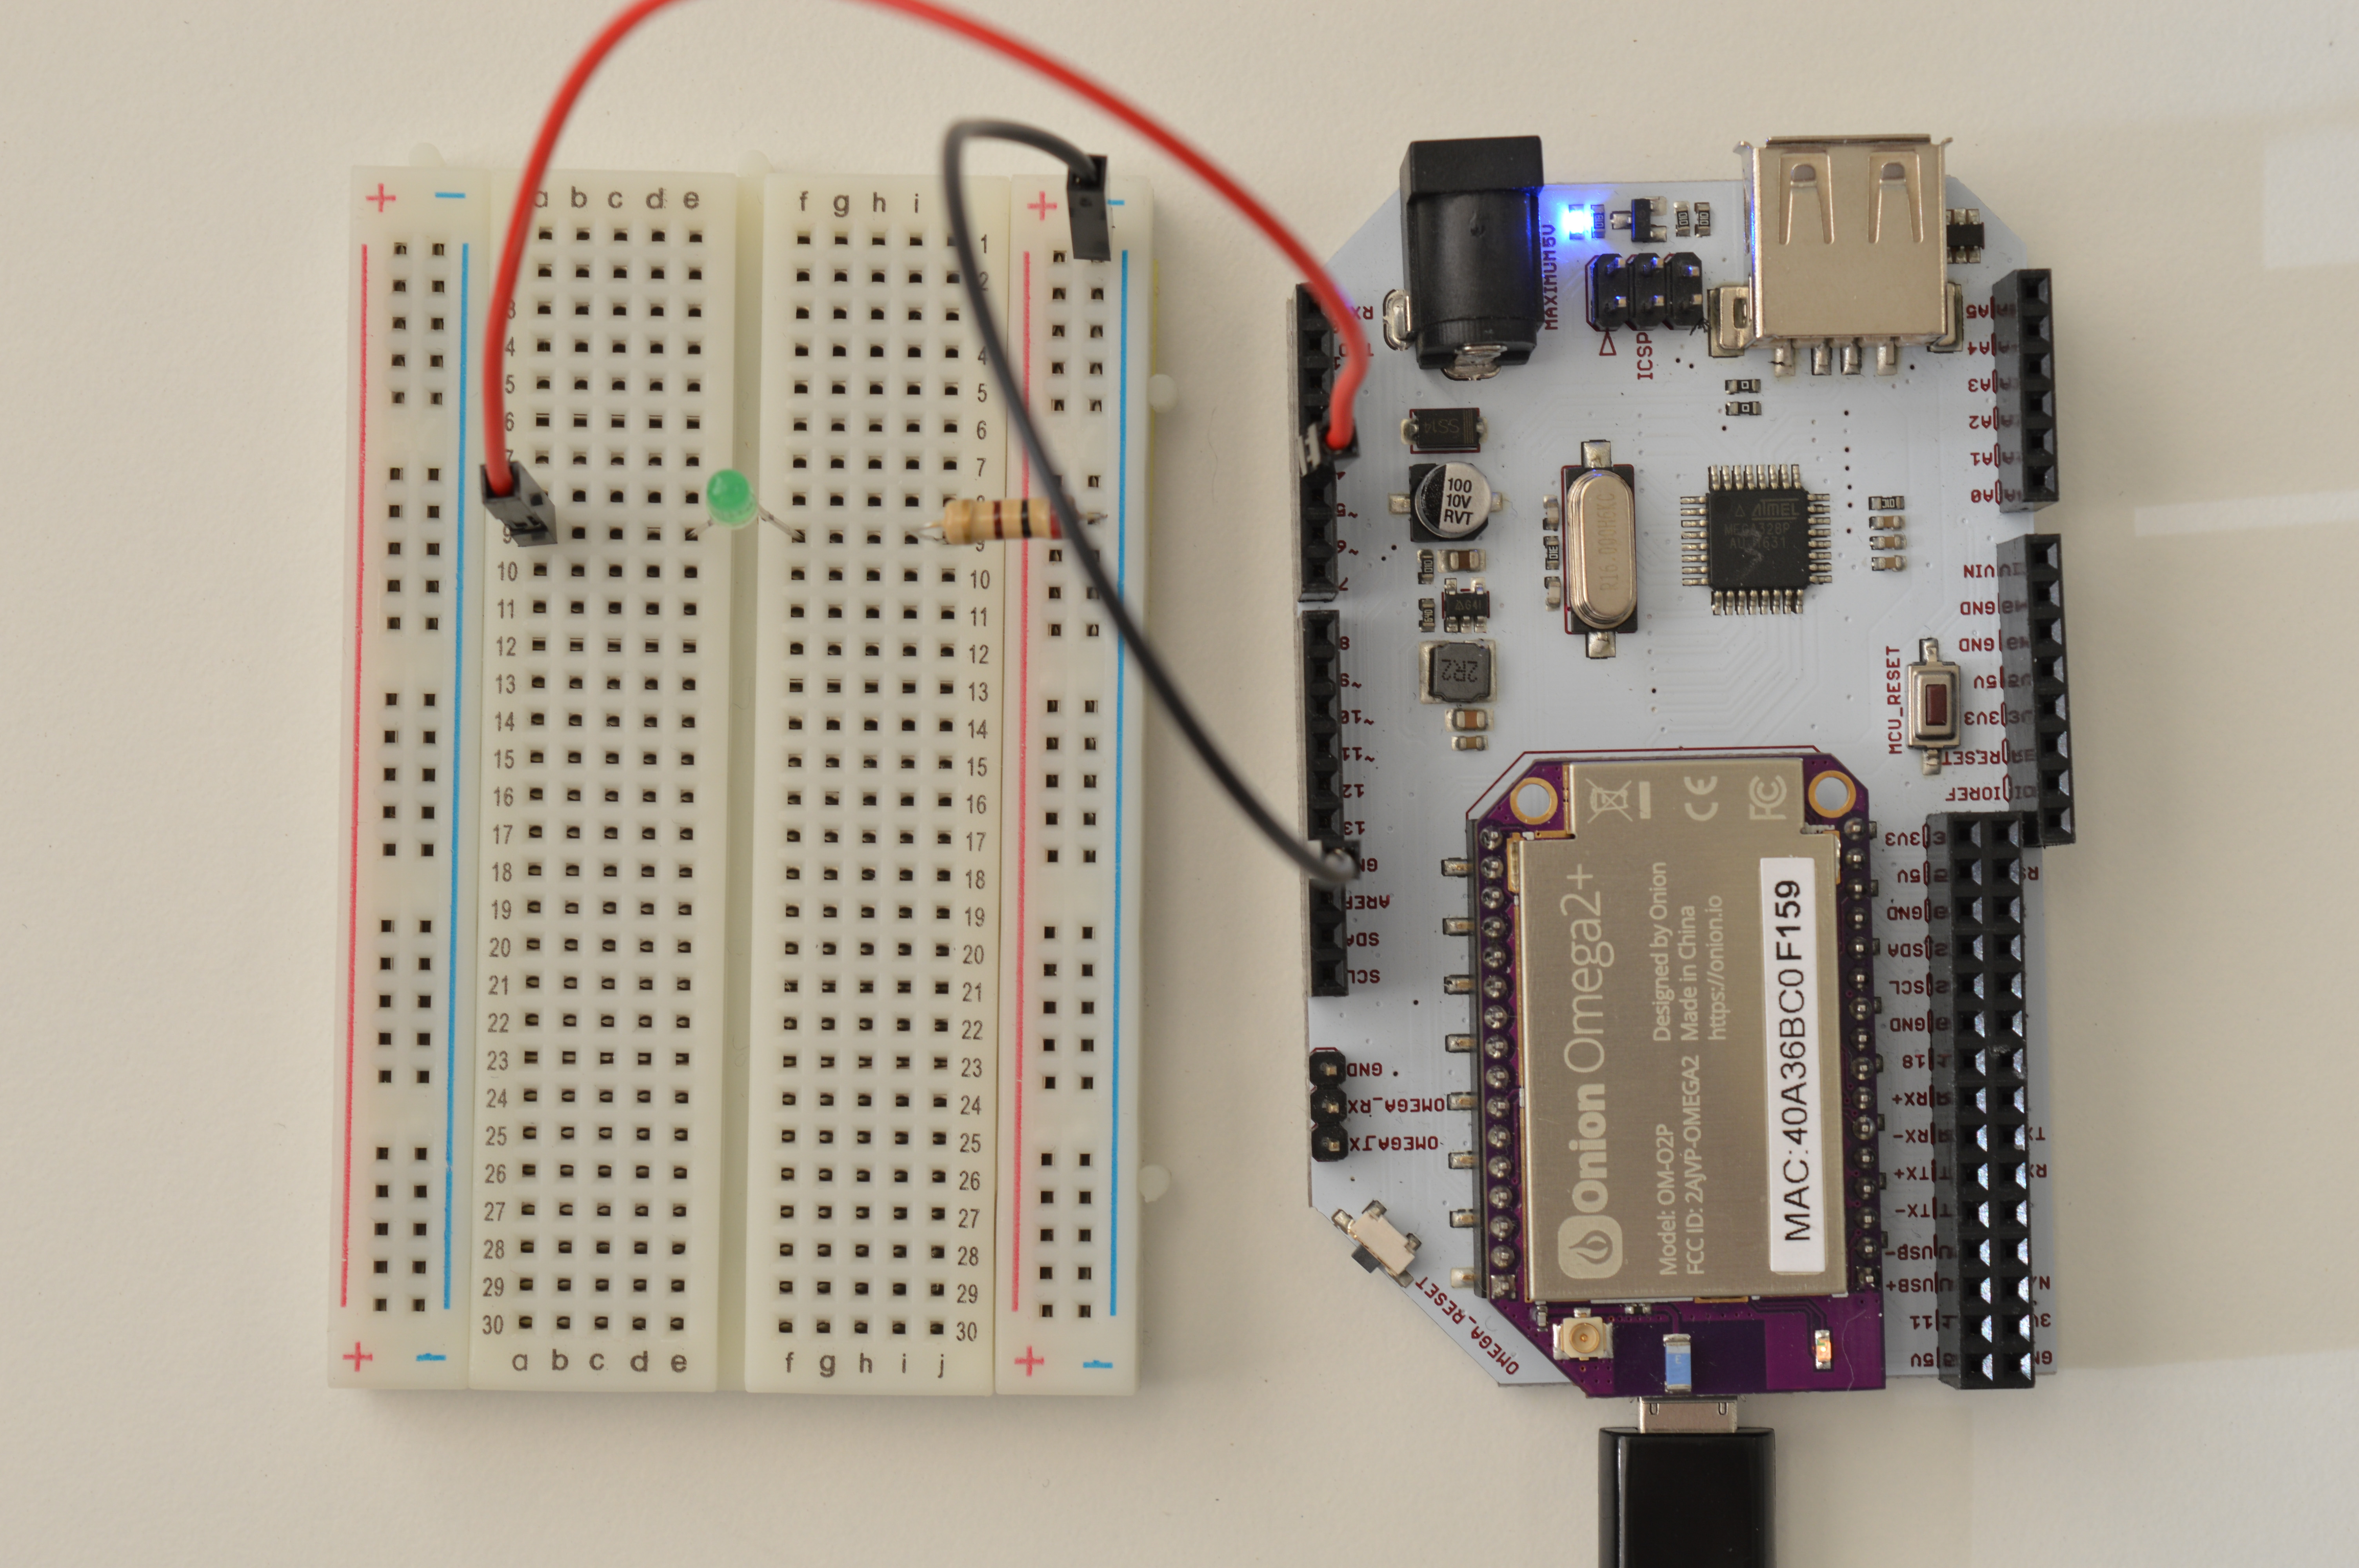 Onion Omega2 Arduino Dock Starter Kit Is A Simple Flashing Led Circuit Operating On The Breadboard Blinking